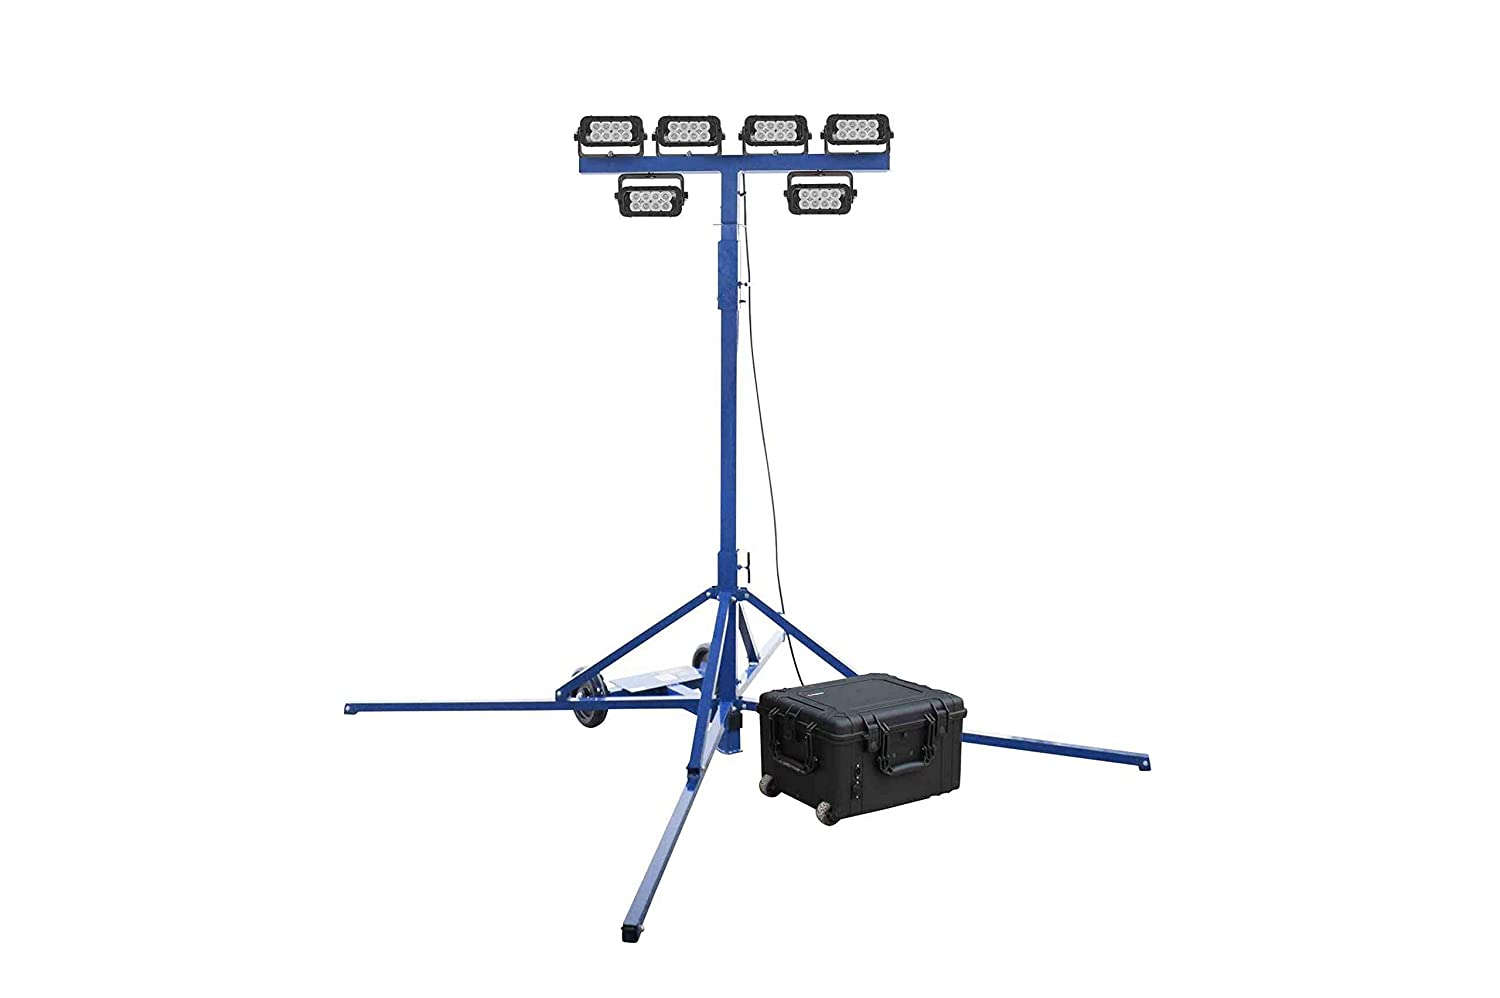 Portable Infrared LED Tower-Spot//Flood- IR LED Lights 6 Rechargeable Li-ion Battery -Tower Mount